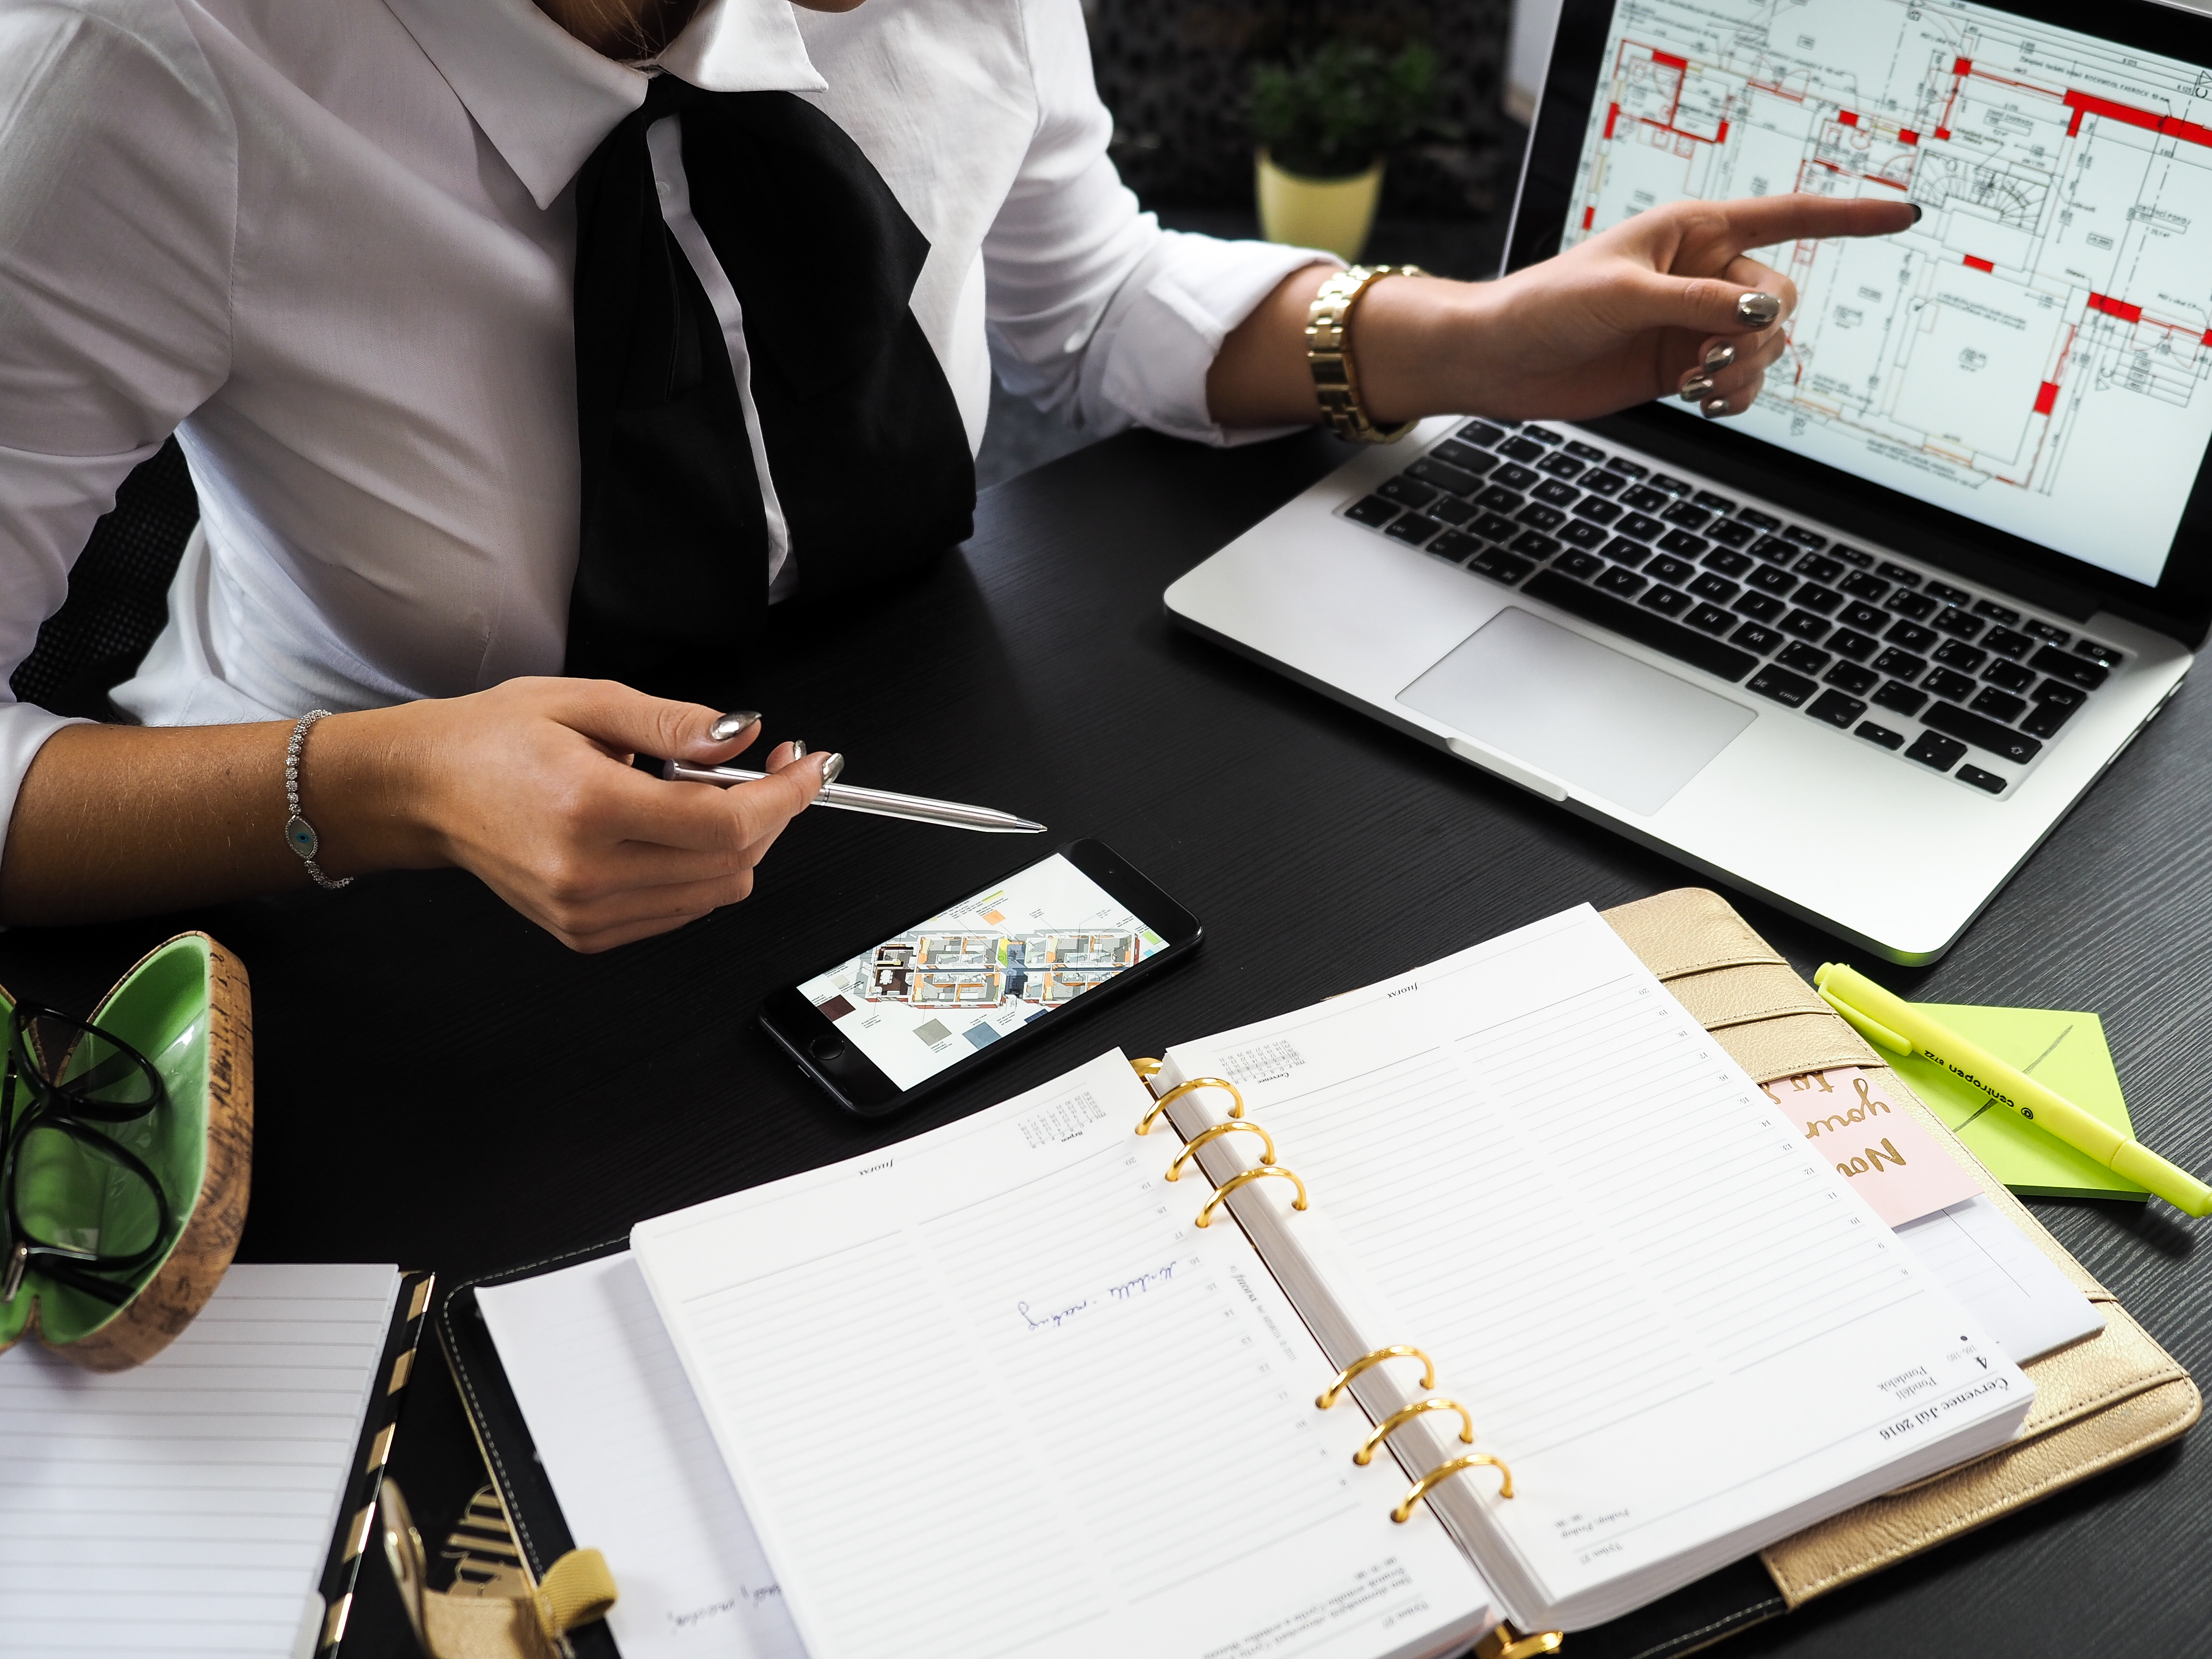 3 Ways to Help Every Associate Excel at Work